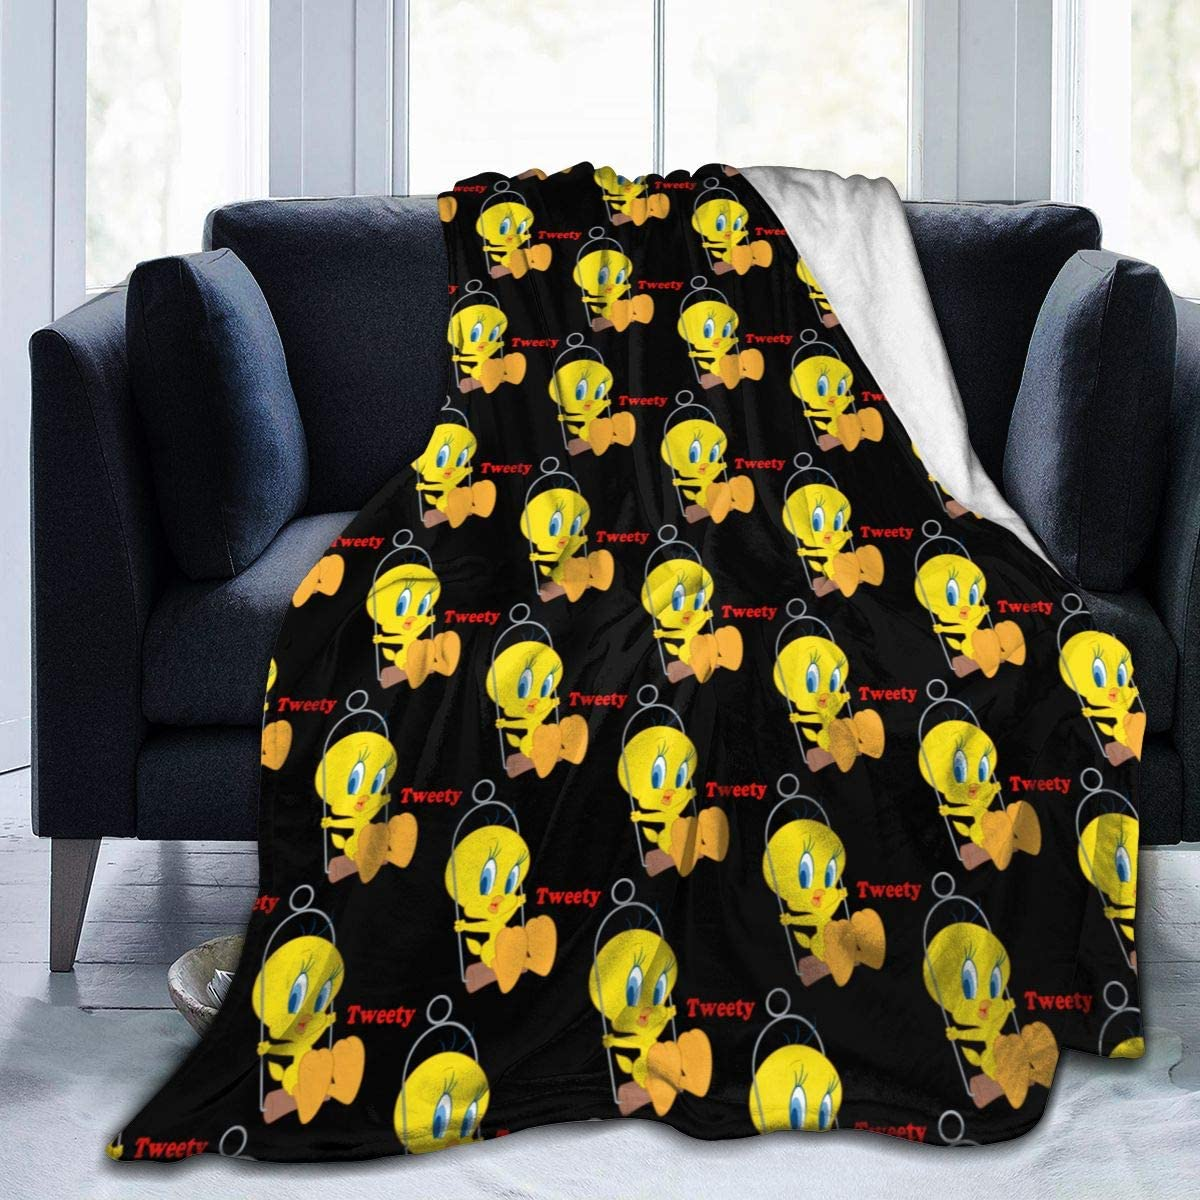 Tweety Bird Flannel Fleece Throw